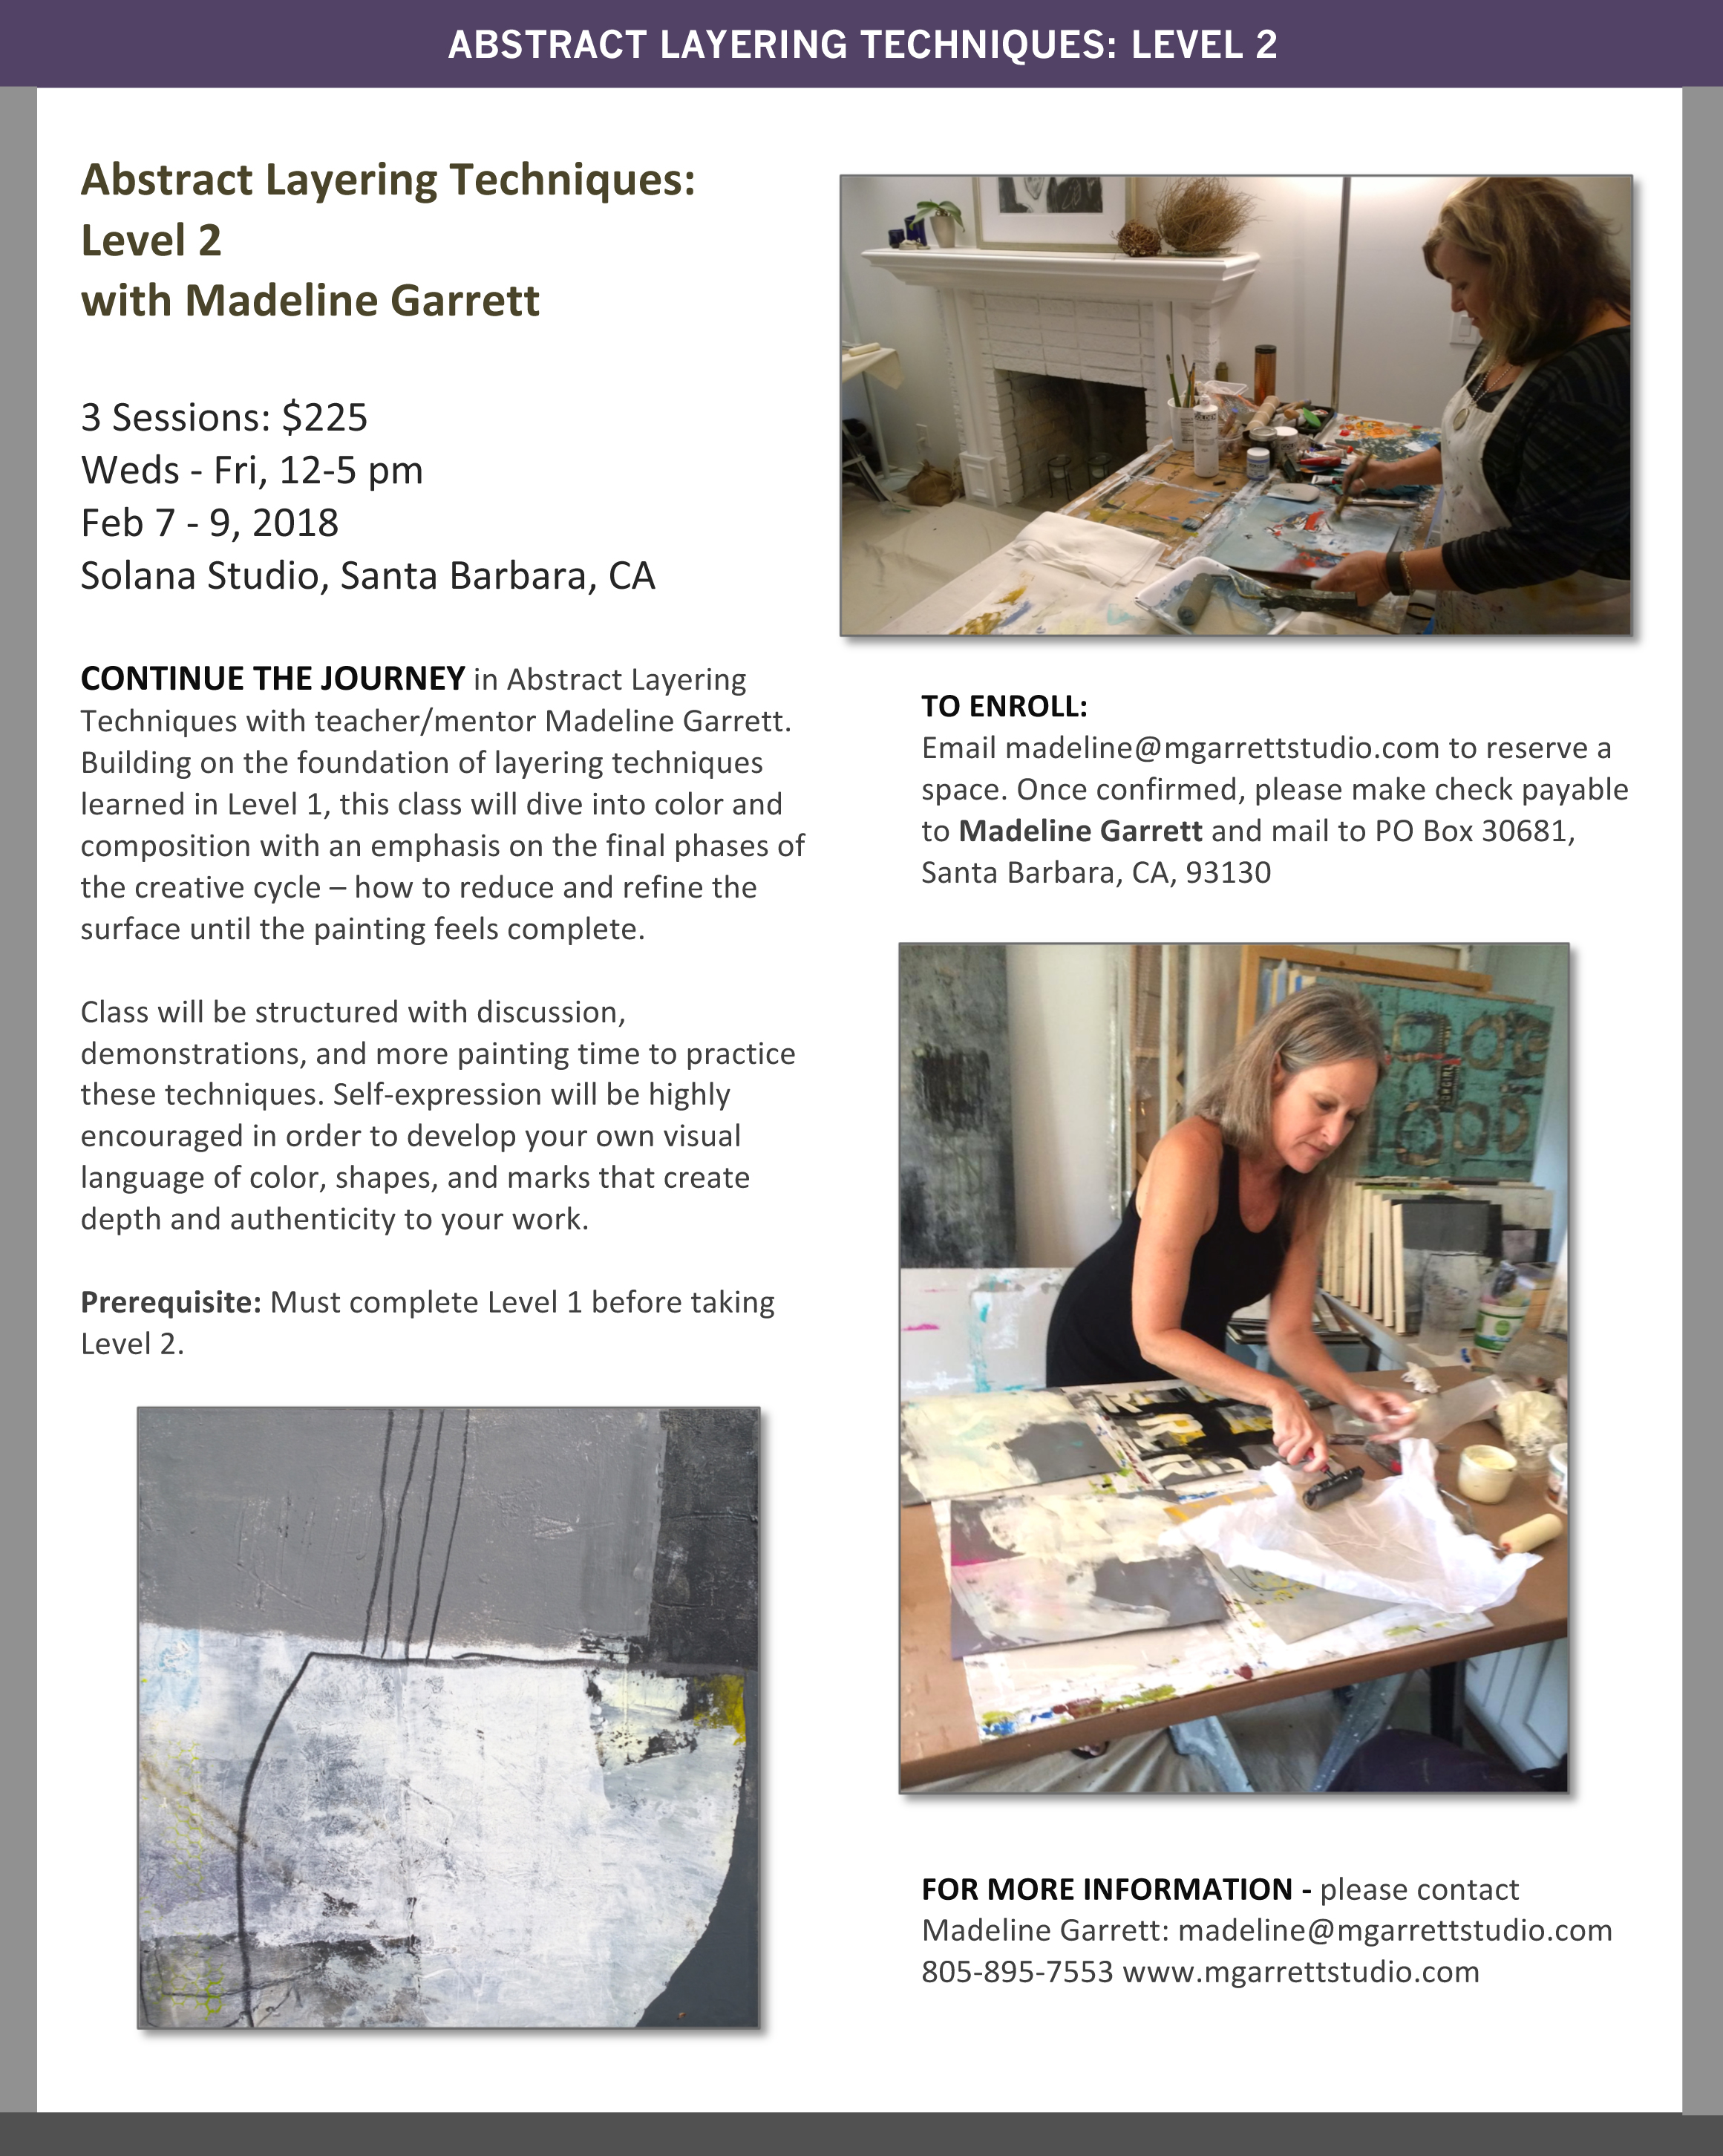 Abstract Layering Techniques Workshop: Level 2 - Feb 2018 with Madeline Garrett